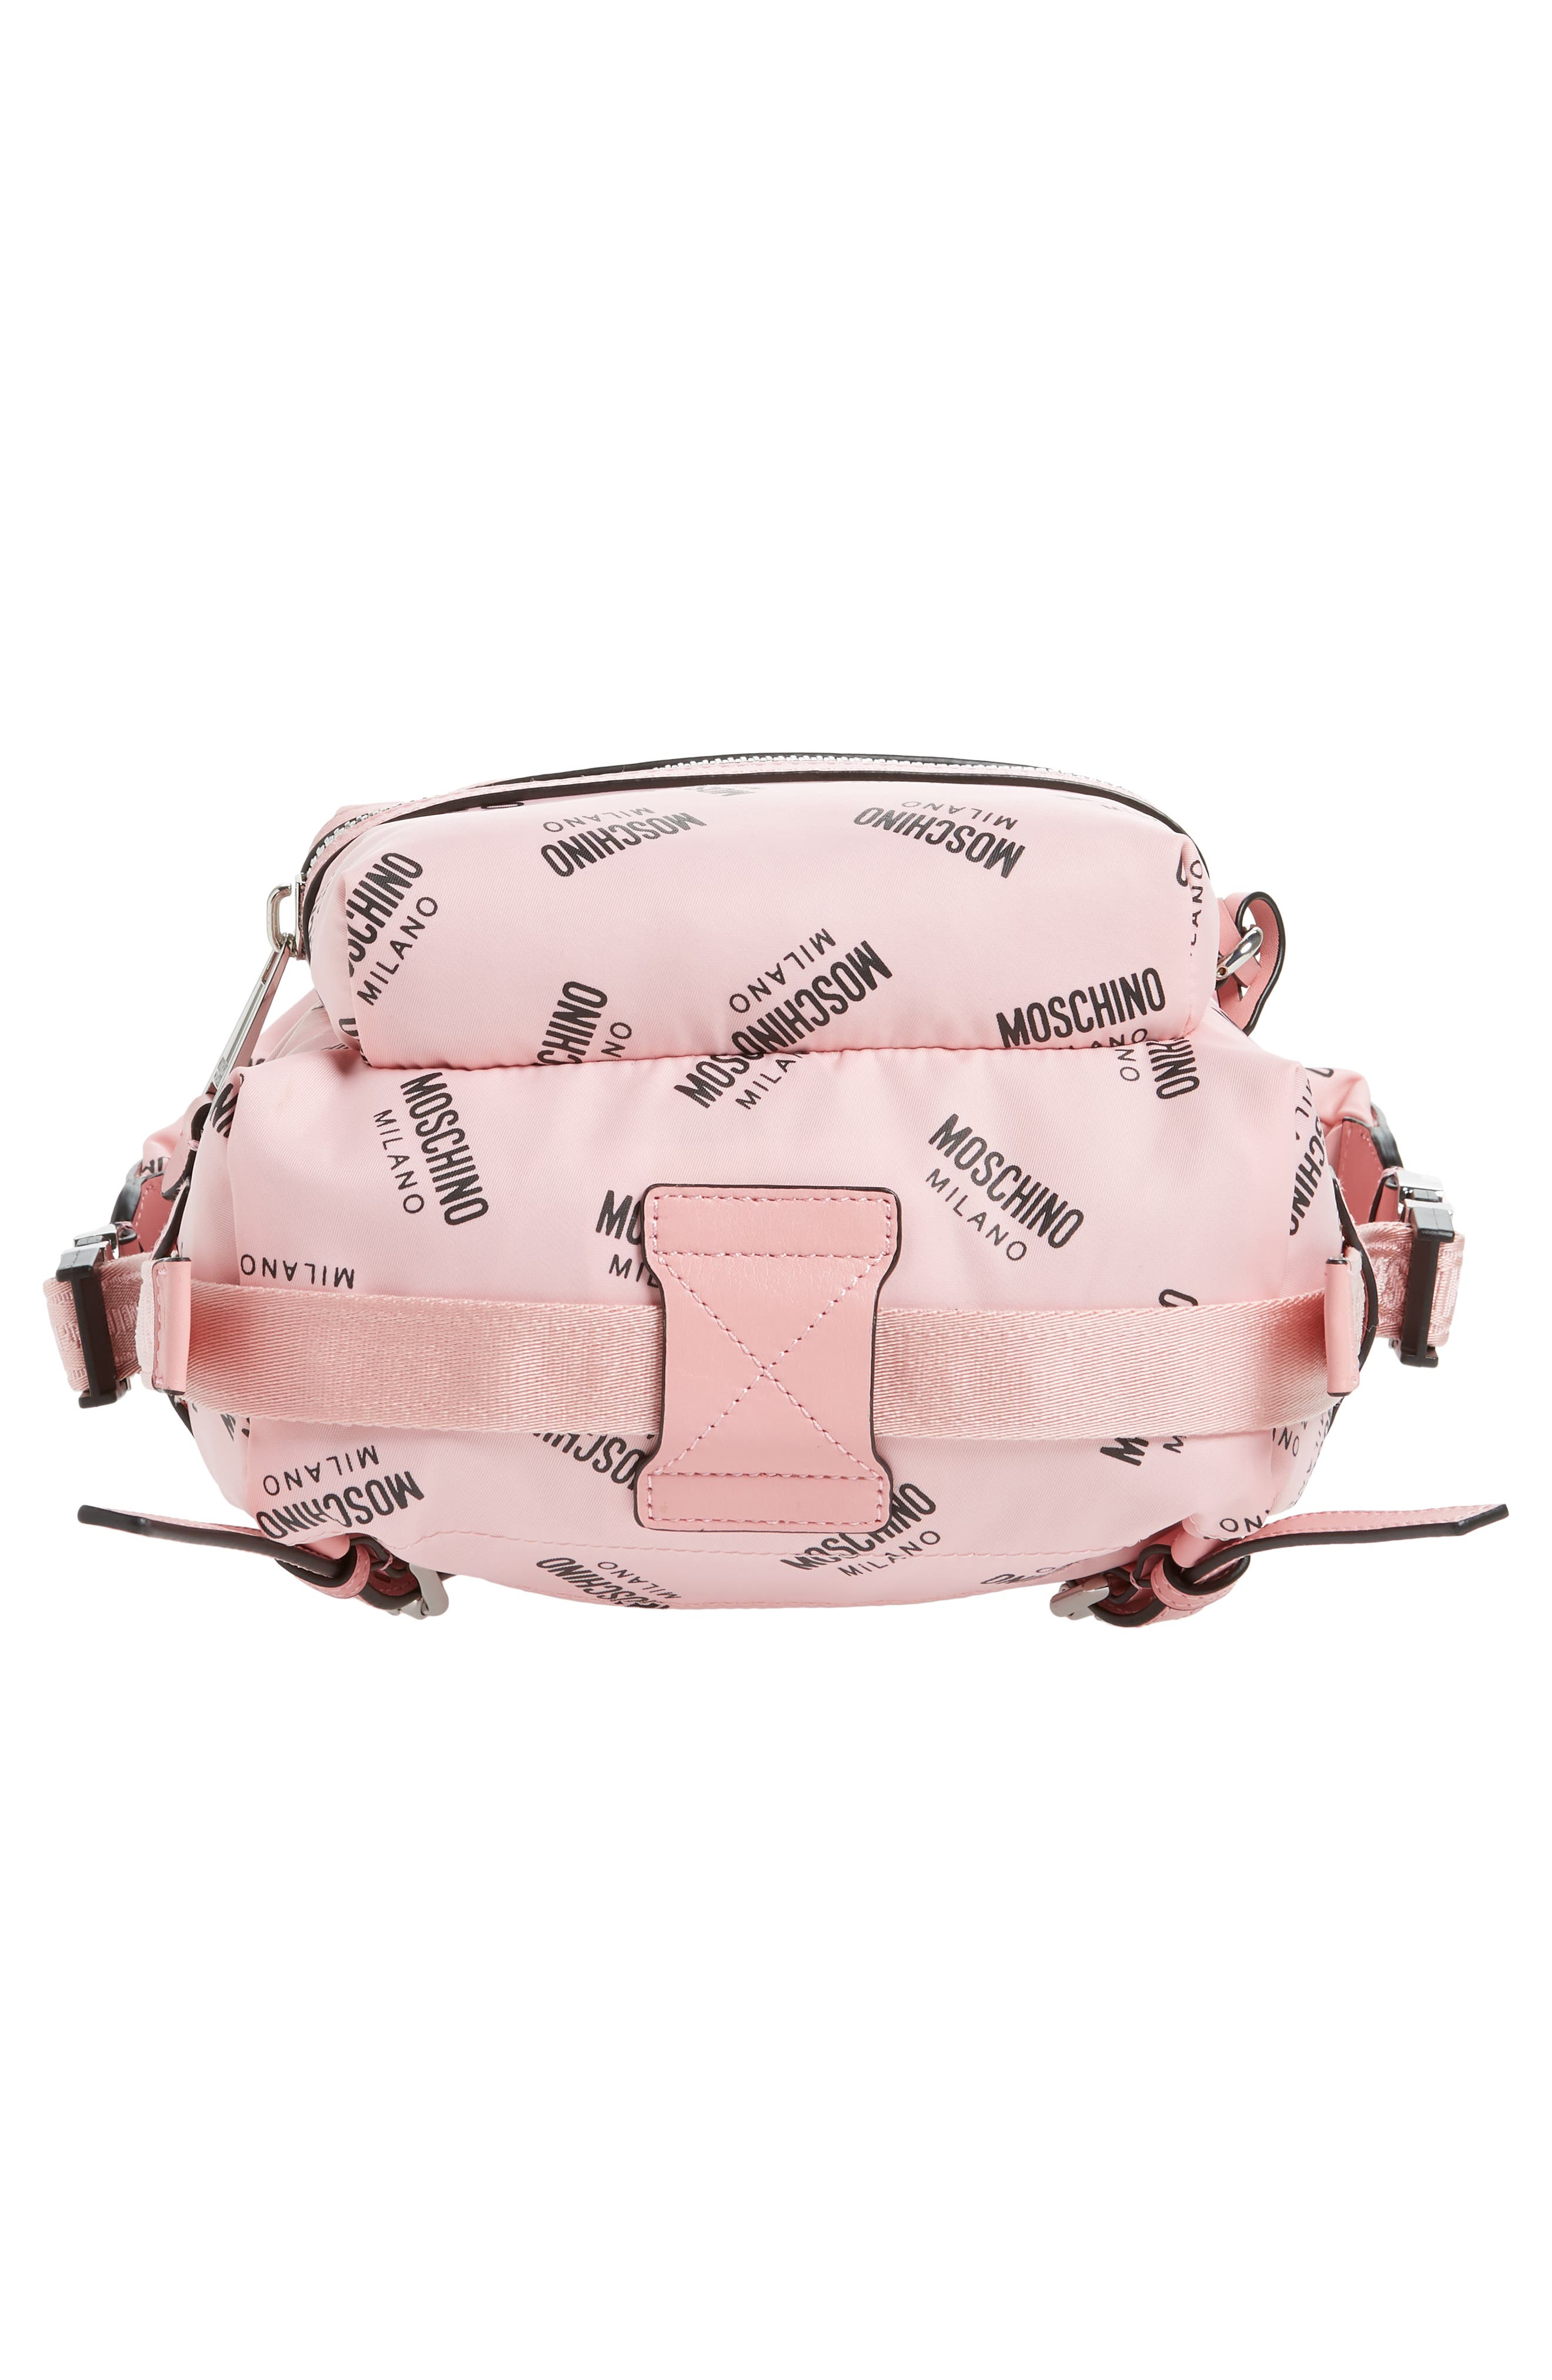 MOSCHINO,                             Small Logo Backpack,                             Alternate thumbnail 6, color,                             PINK